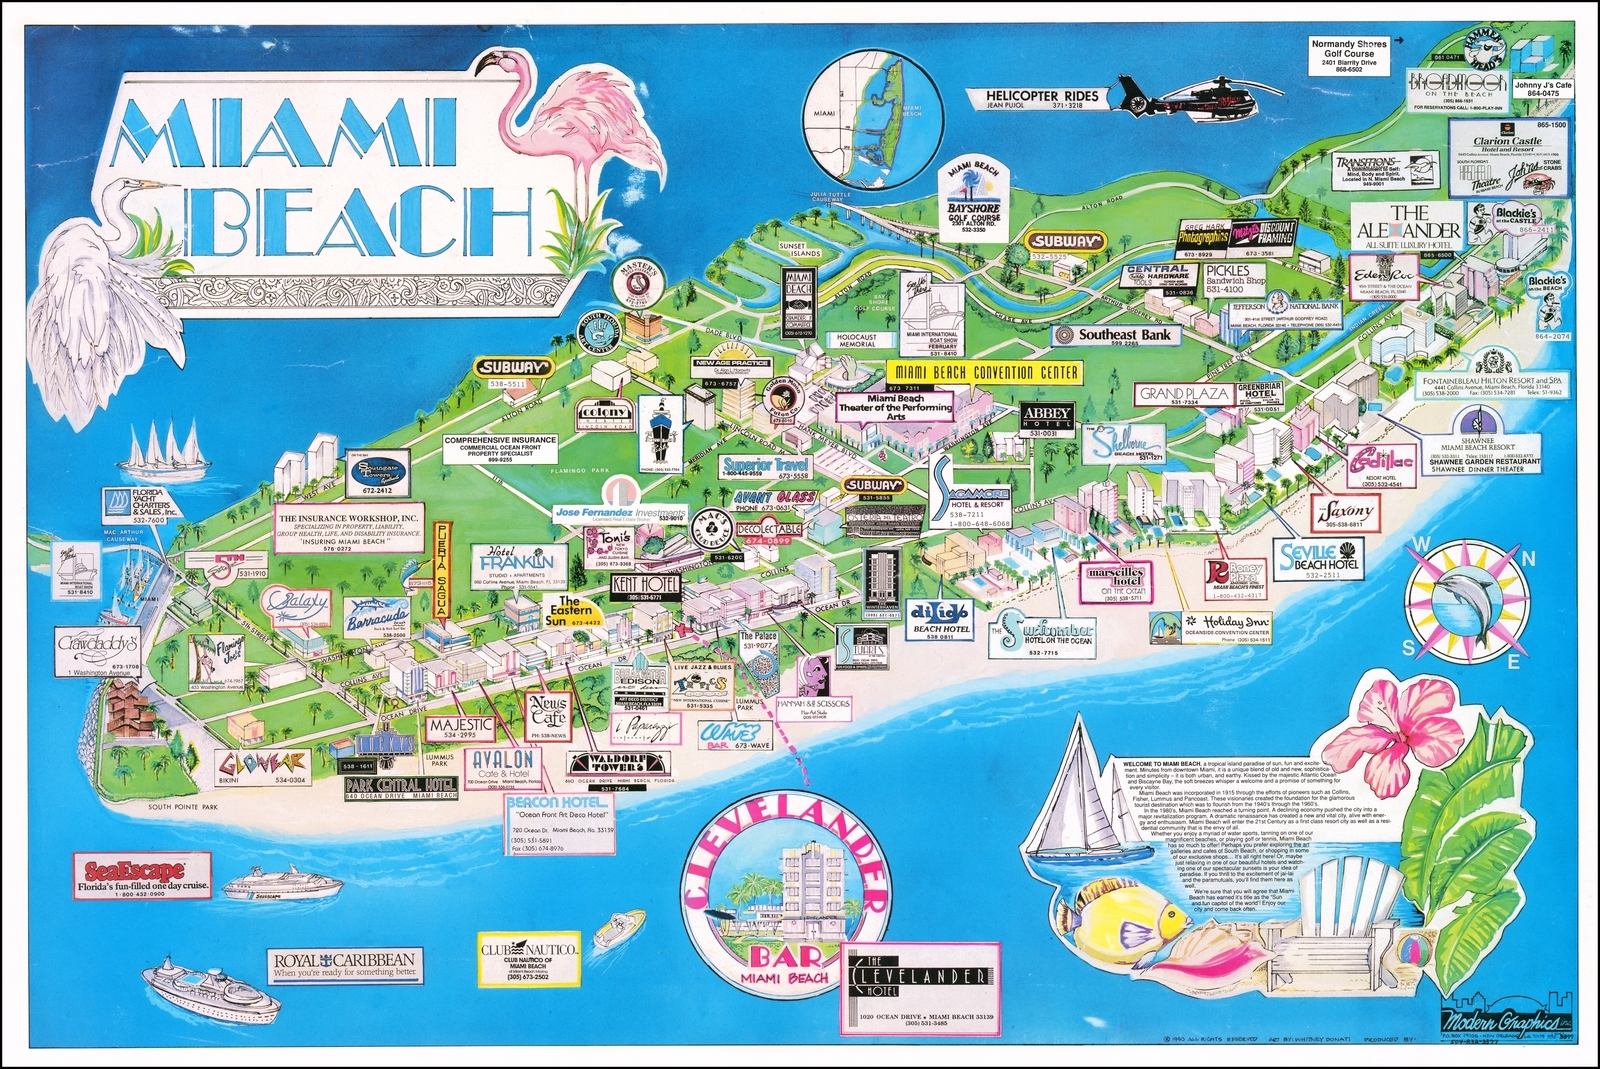 Miami Beach - Barry Lawrence Ruderman Antique Maps Inc. regarding Map Of Miami Beach Area